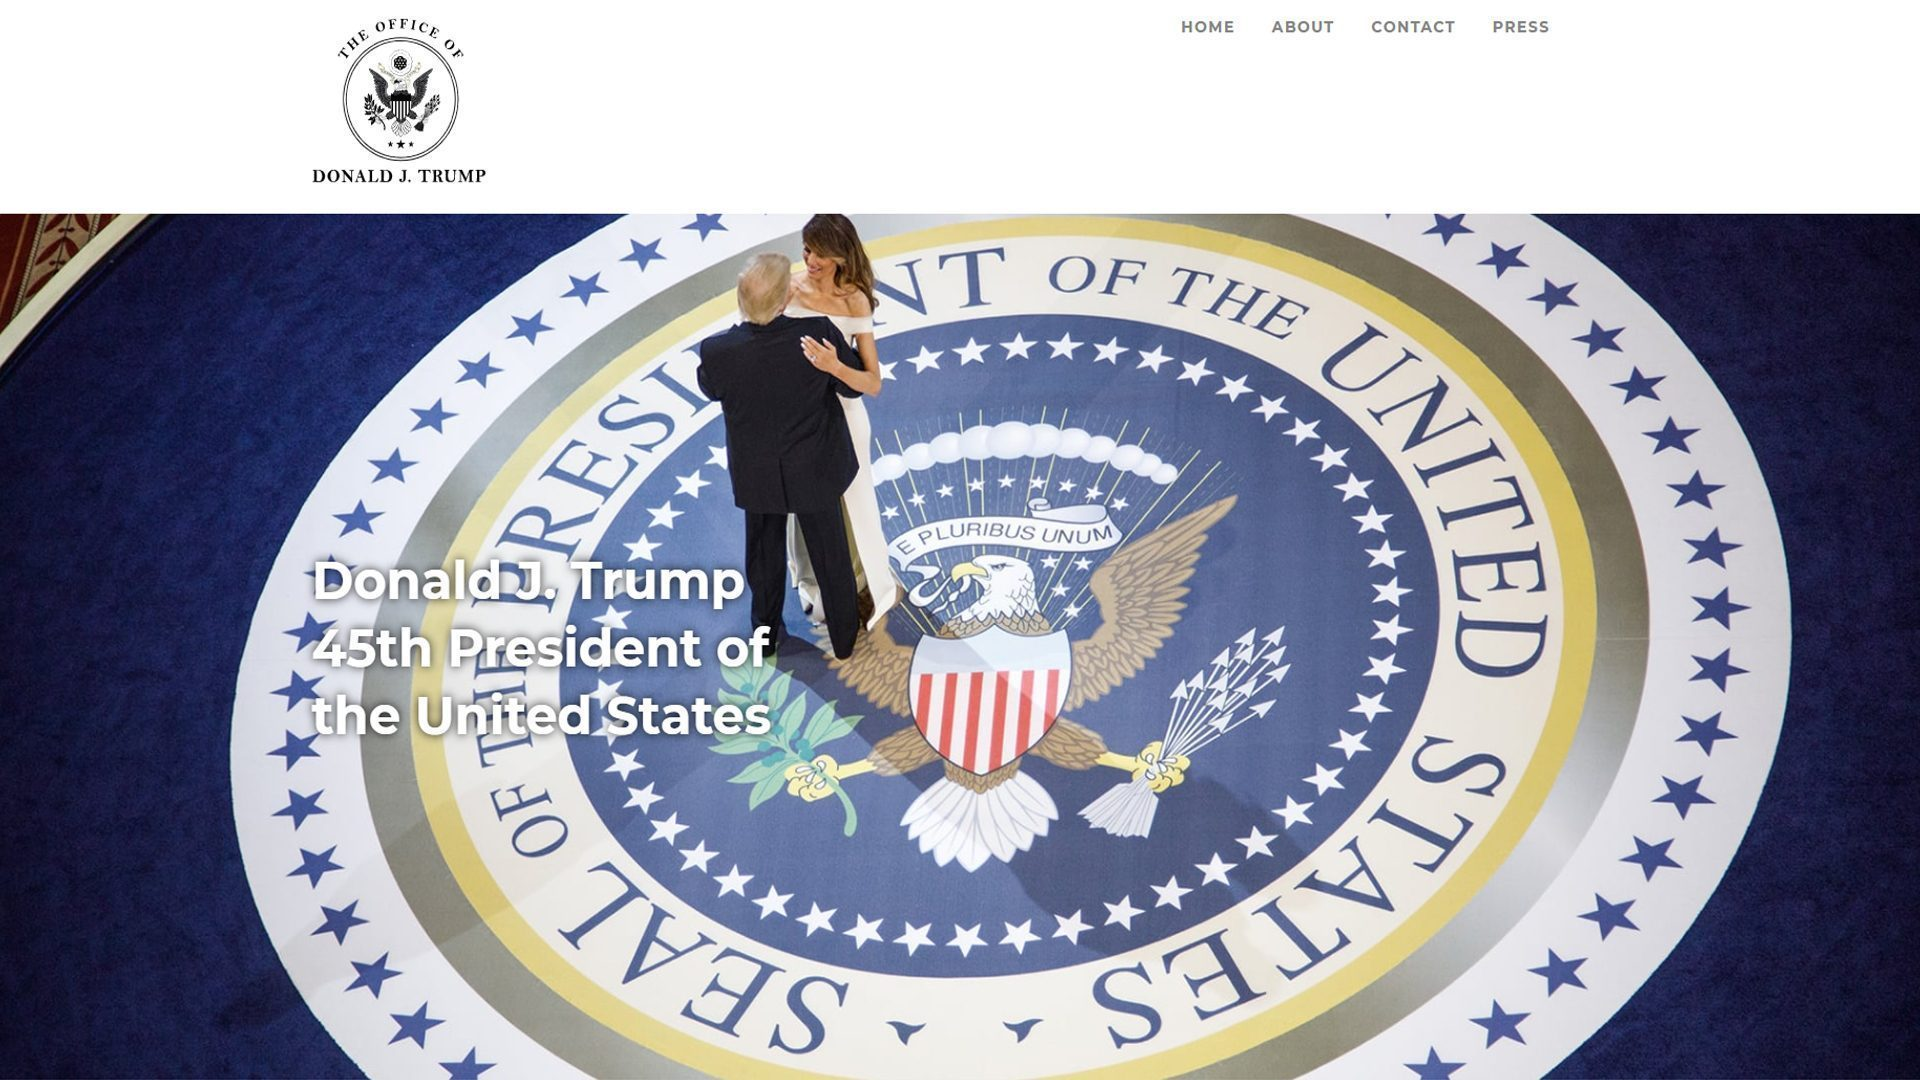 donald trump launches official website of the 45th president